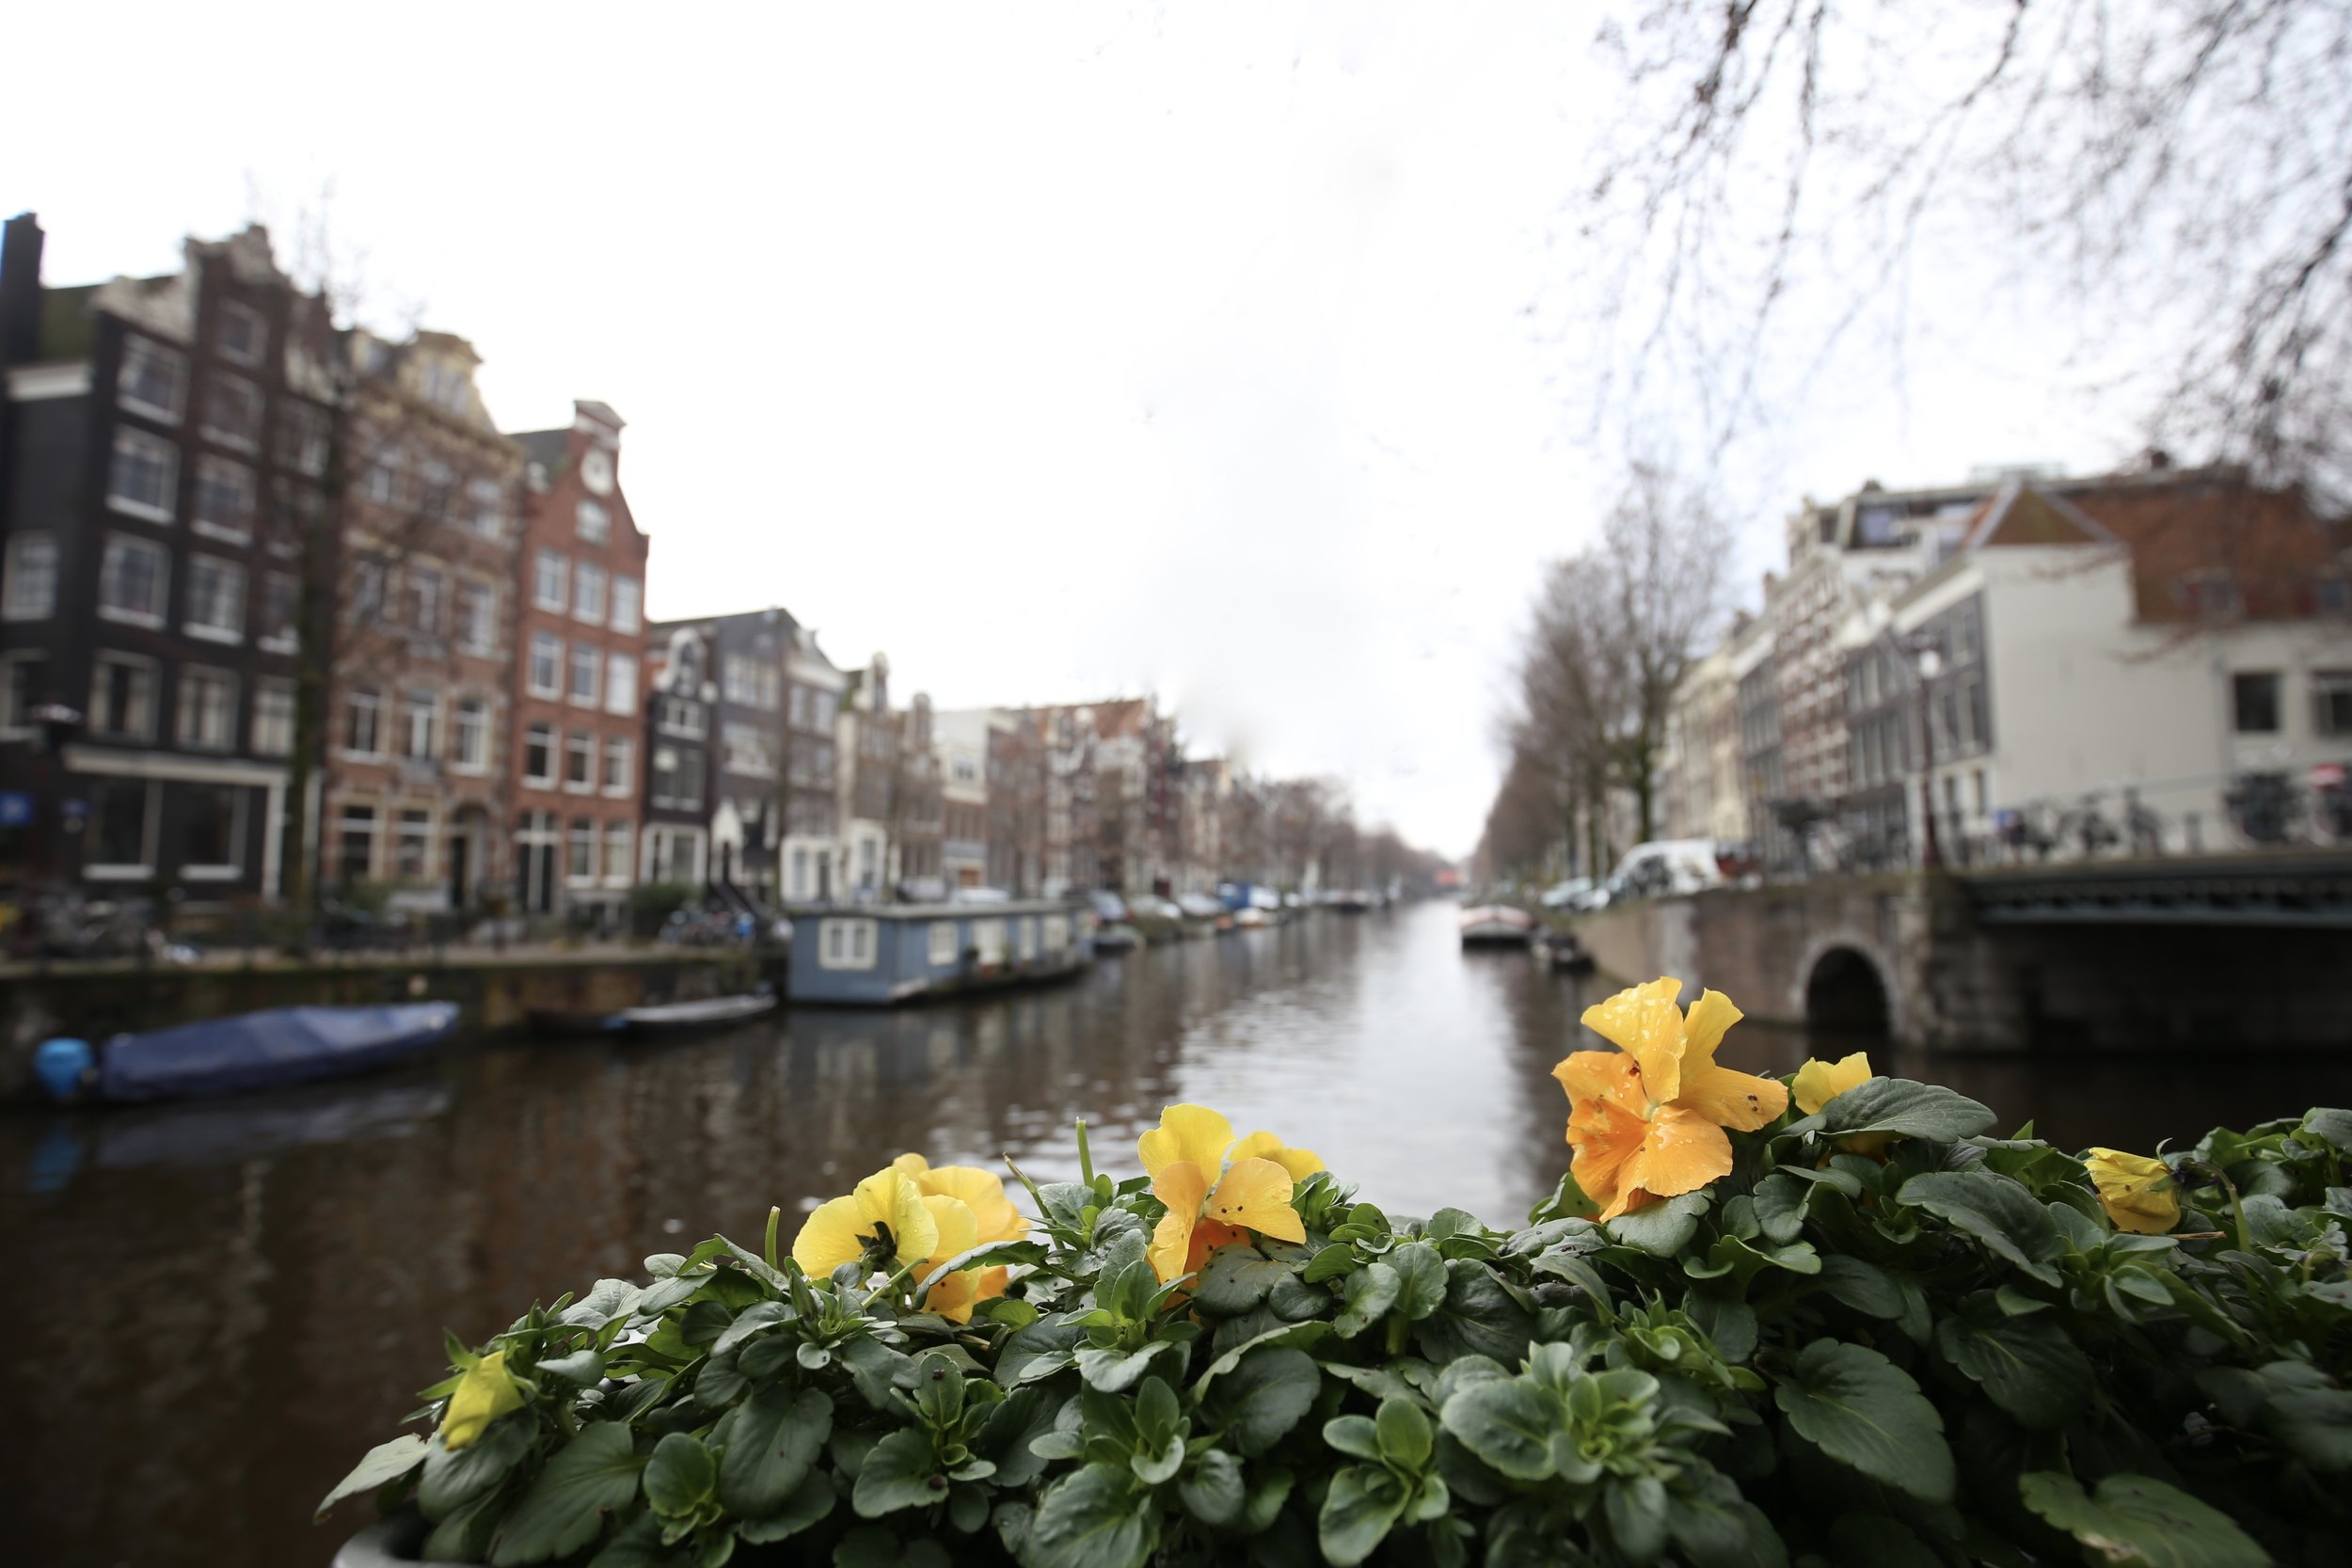 Flower boxes with pansies on a dreary day by the grey canals, Amsterdam.